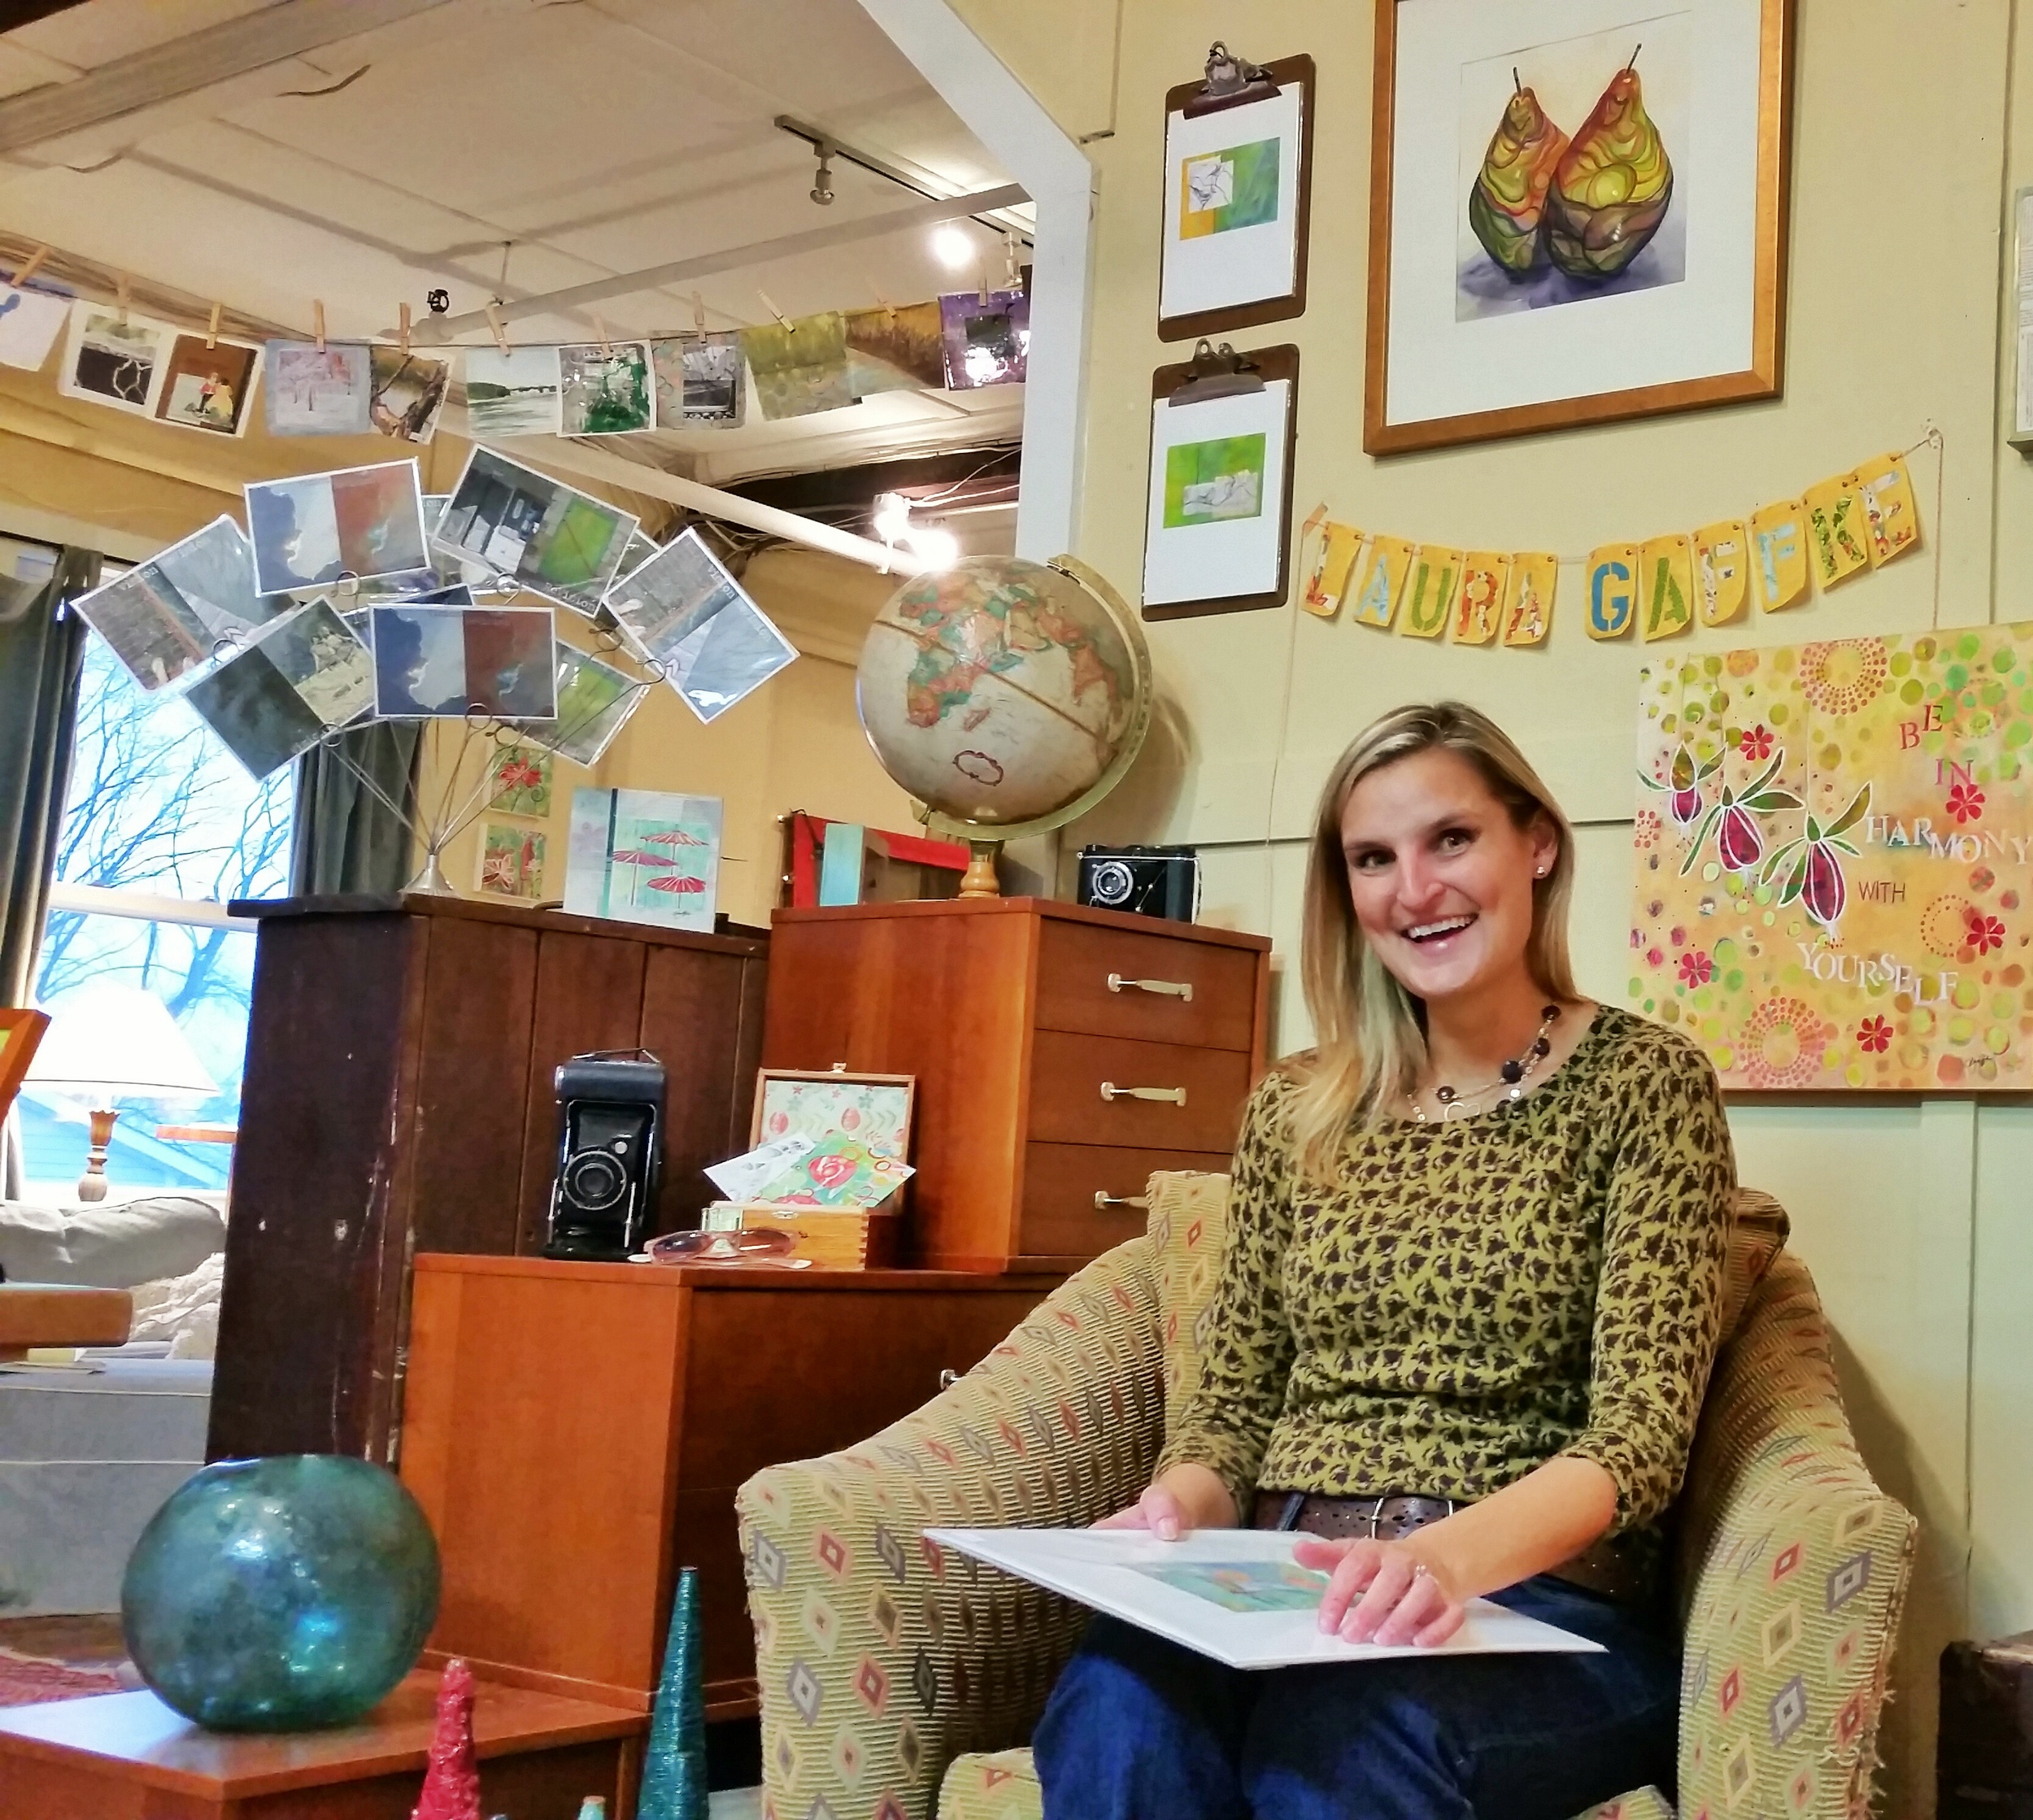 The lovely Laura Gaffke sitting in the Travel display! She and Susan Thomas are creating multiple vignettes mixing Laura's pieces with Susan's vintage